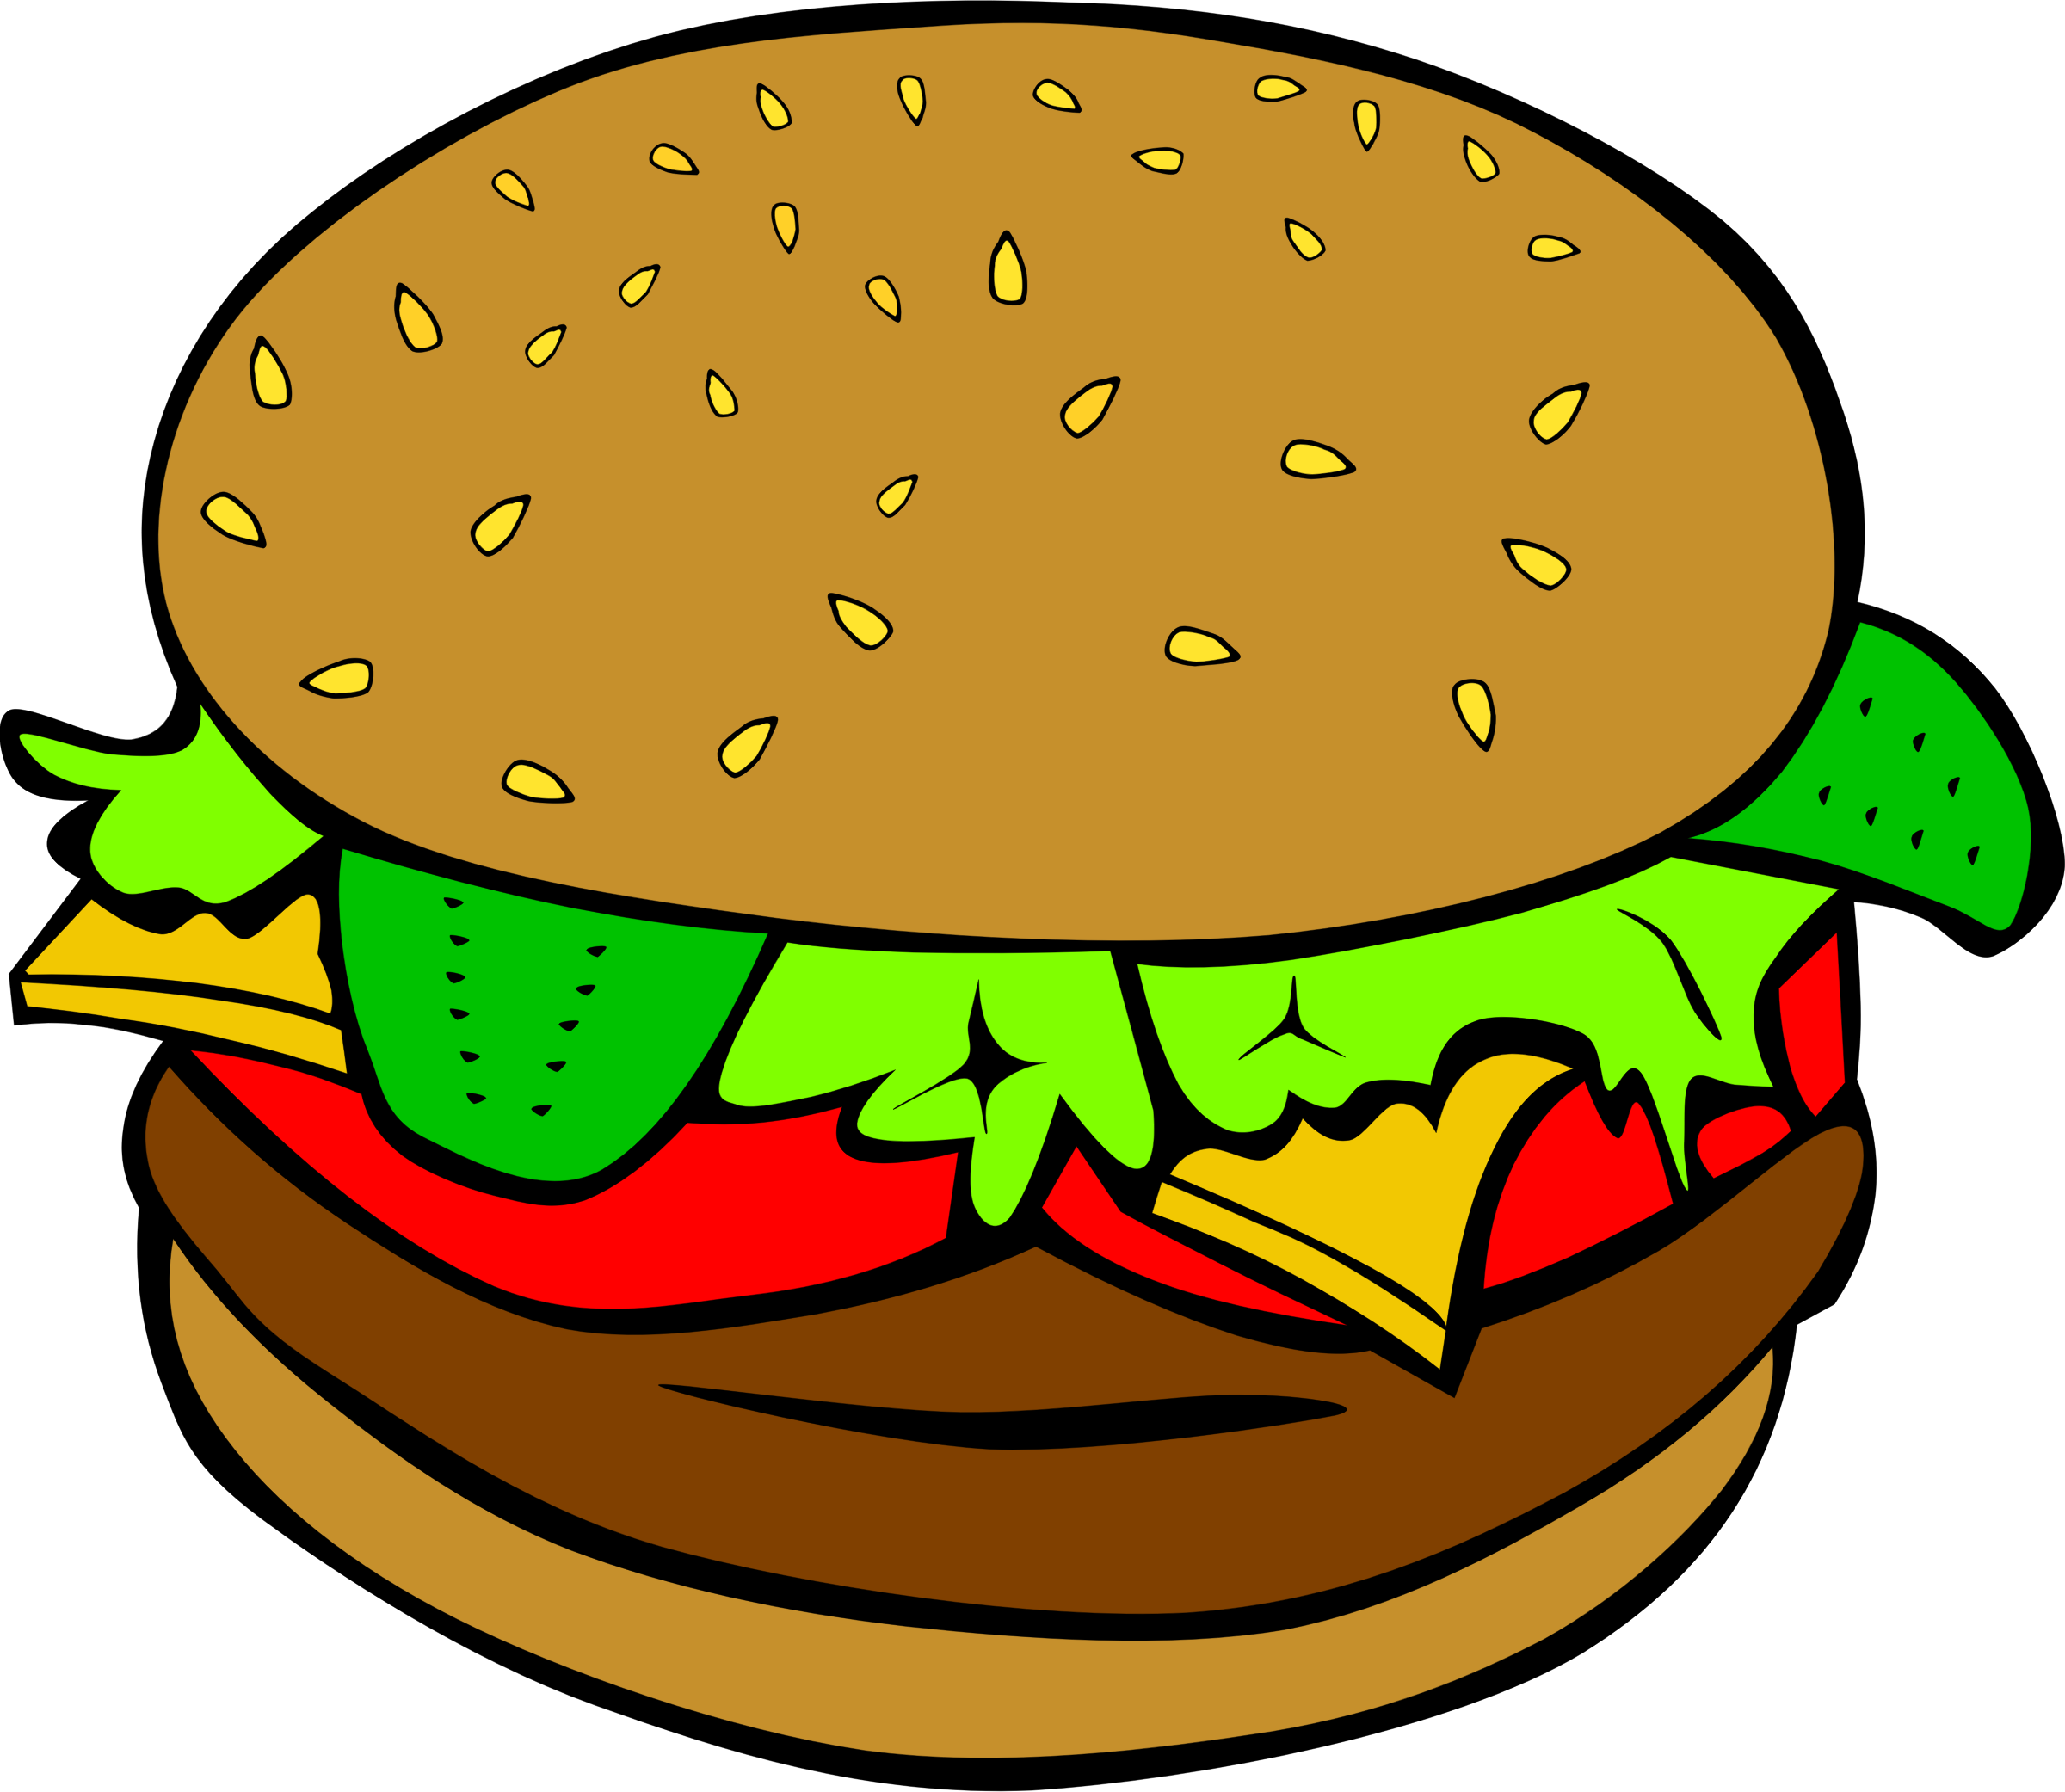 Cartoon hamburger png. Fast food lunch dinner